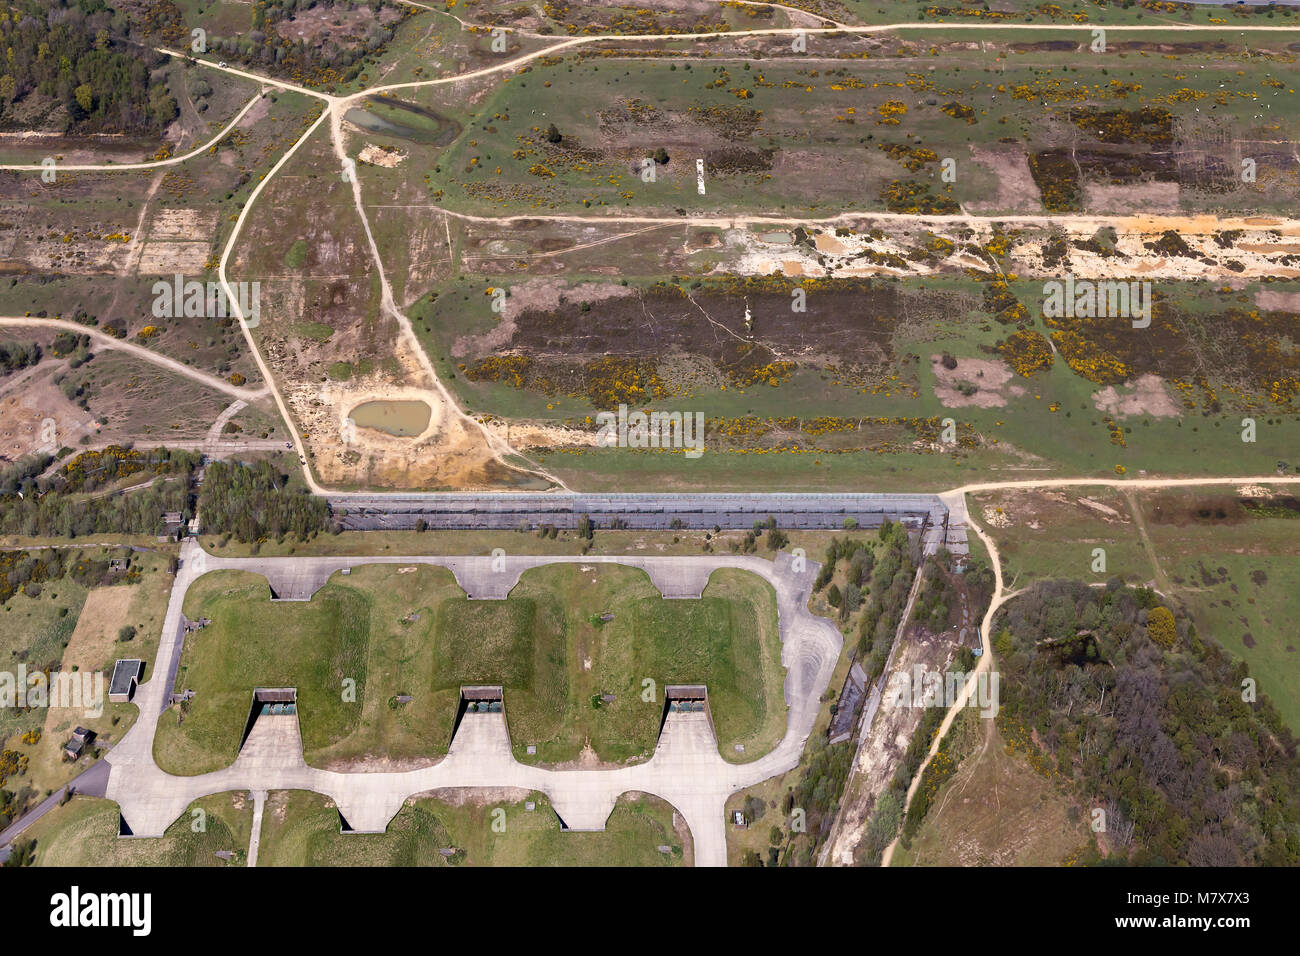 RAF Greenham Common, una antigua estación de la Royal Air Force en Berkshire, Inglaterra. Escenario de numerosas Imagen De Stock